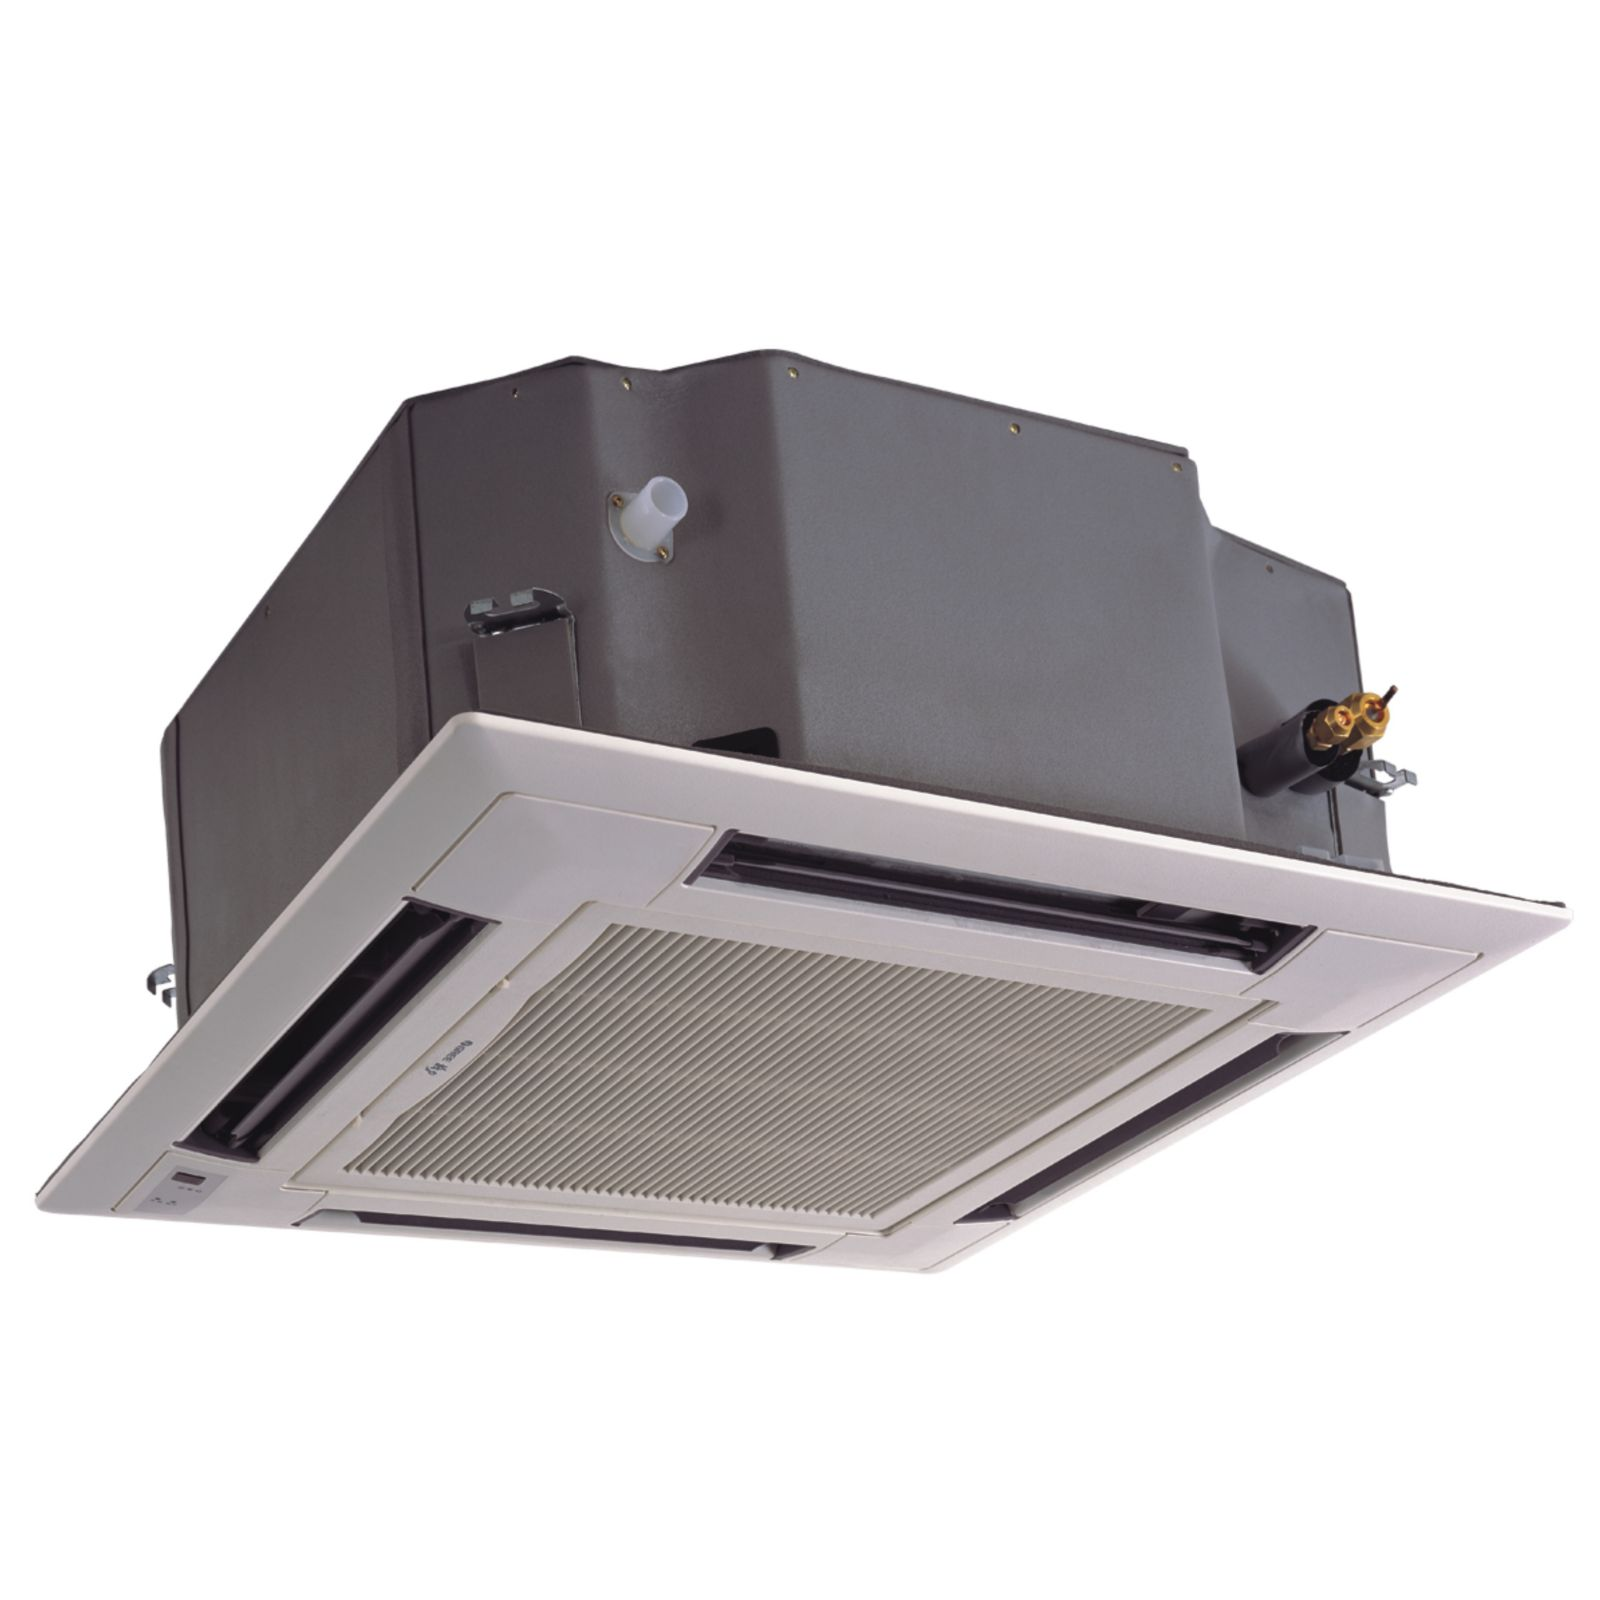 GREE CAS24HP230V1AC - Indoor Ceiling - Recessed, 24K BTU, R410A, 208-230V, 60 Hz